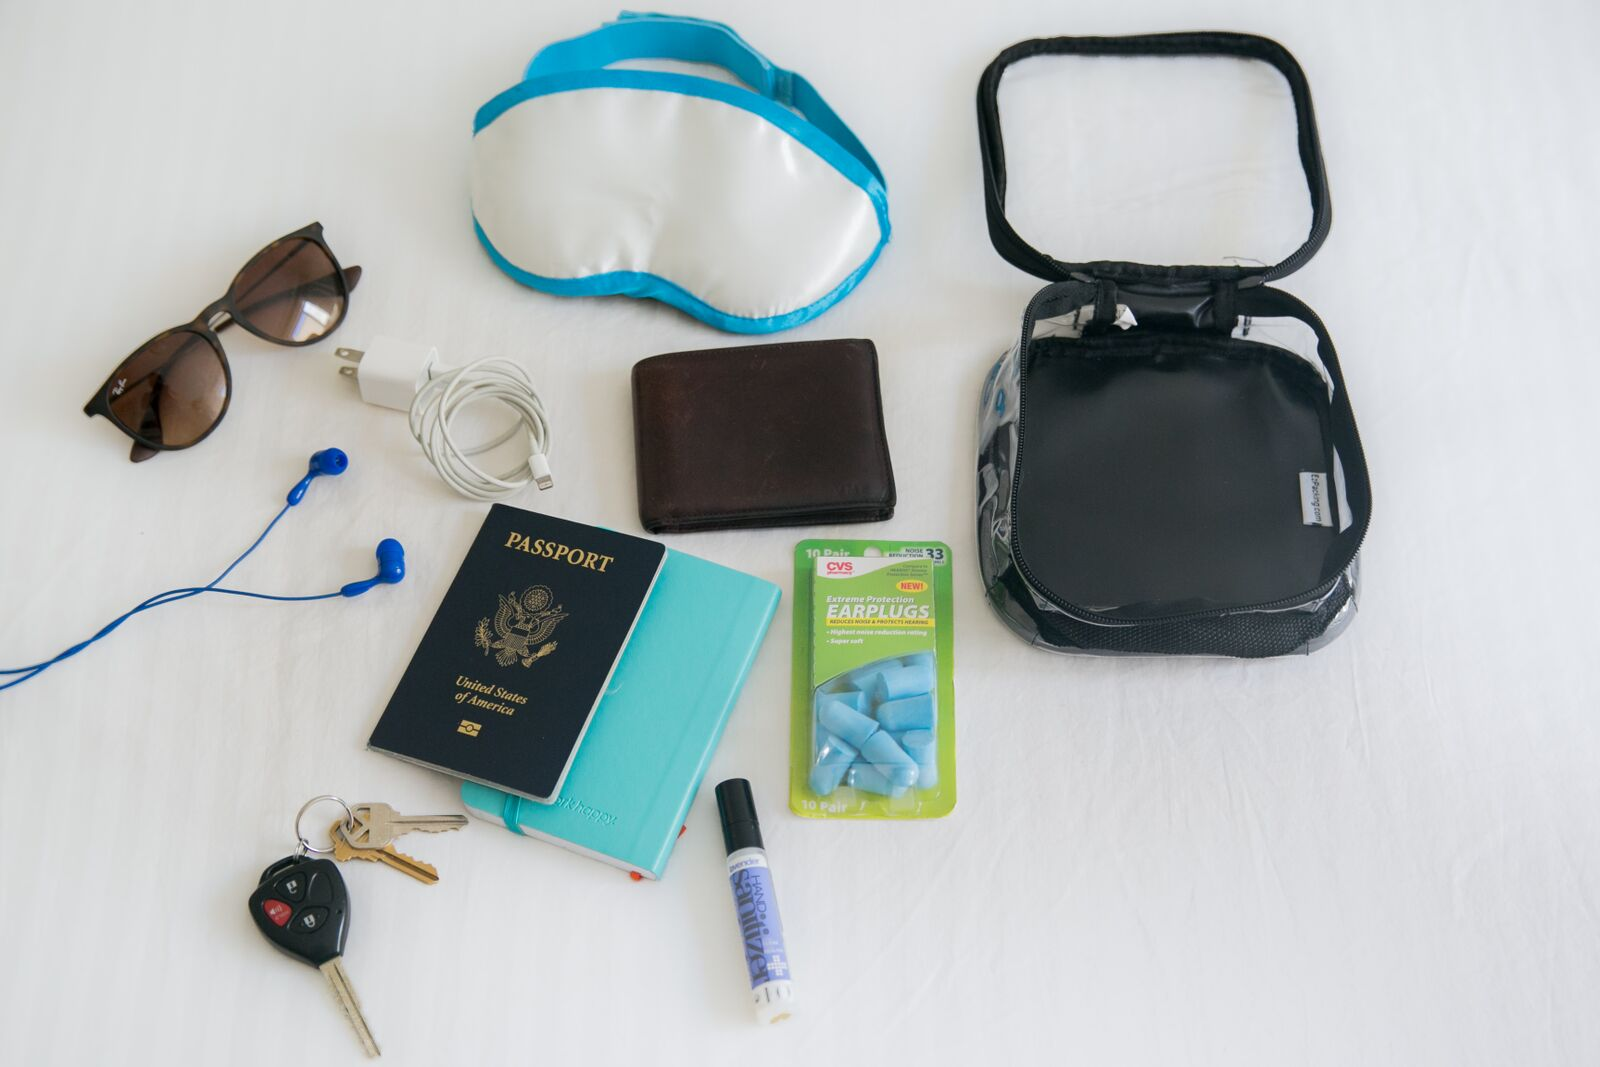 Carry-on items and documents for tropical vacation packing list